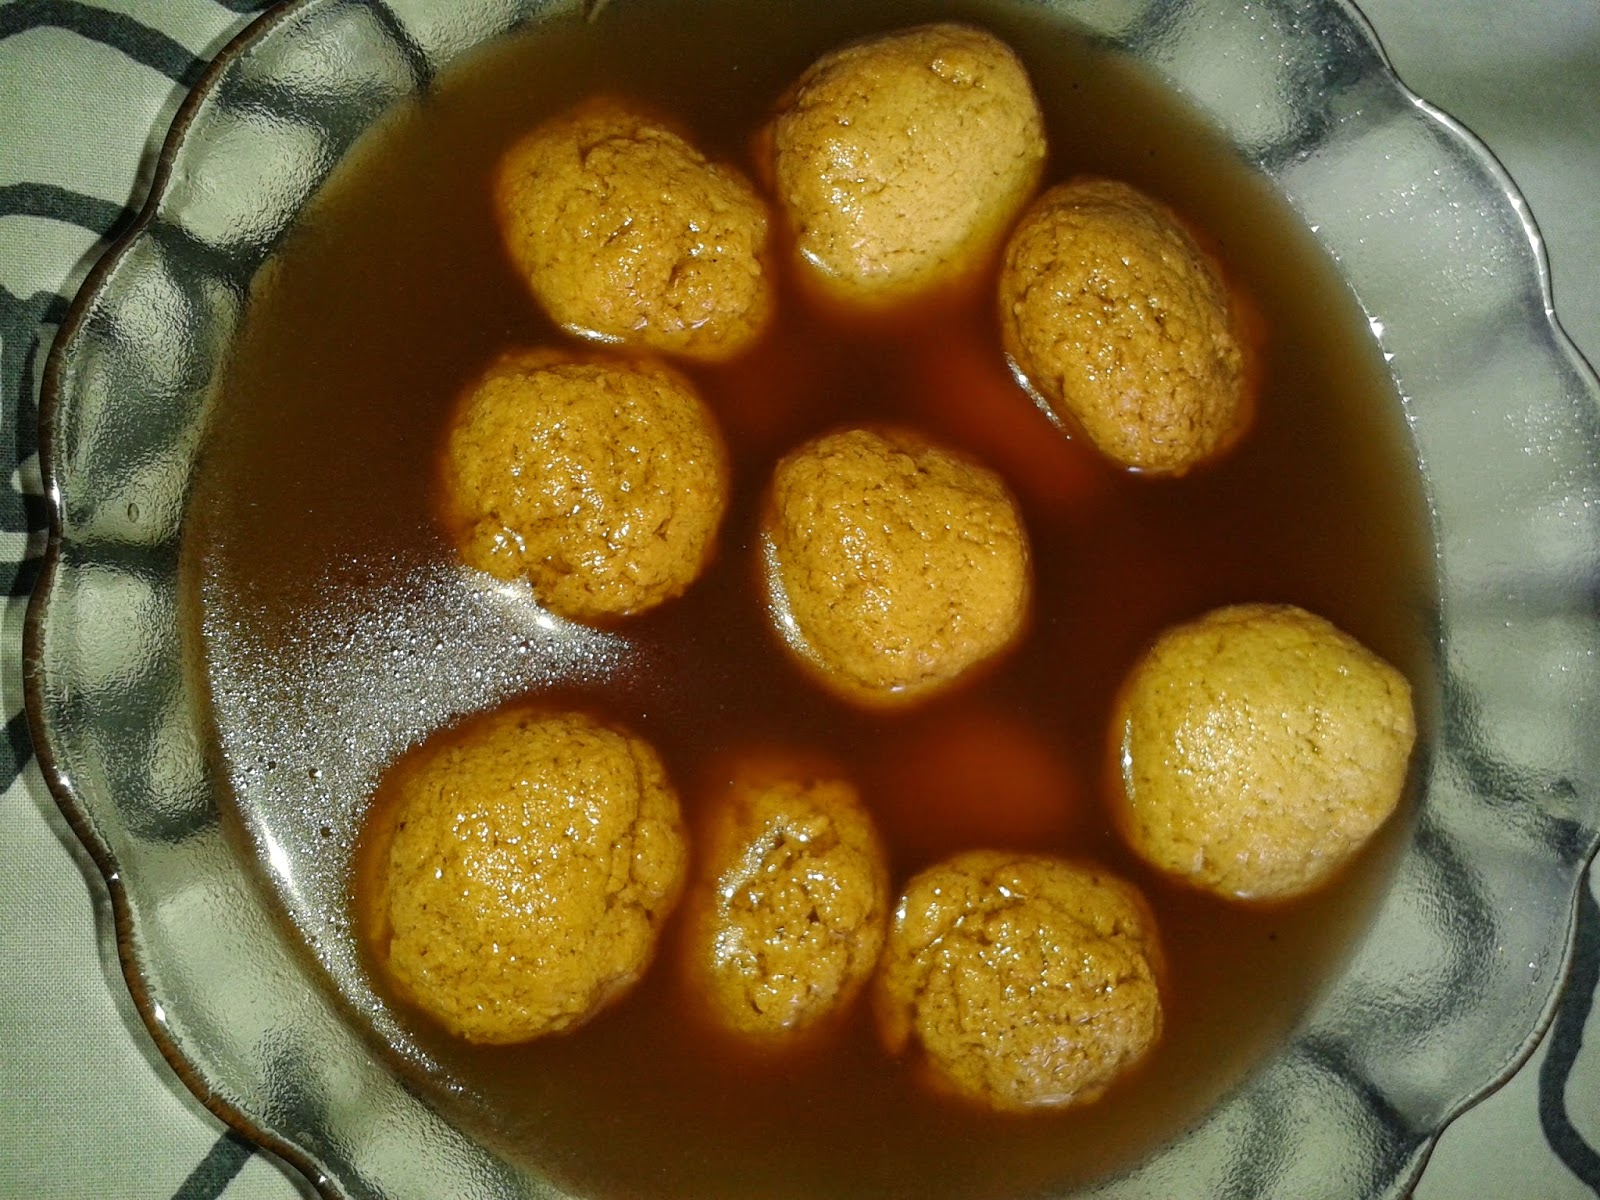 After Some Time We Open The Cooker LidThe Rasgulla Should Be Floating On Syrup And Its Size Double Add Cardamom Powder Serve Chil